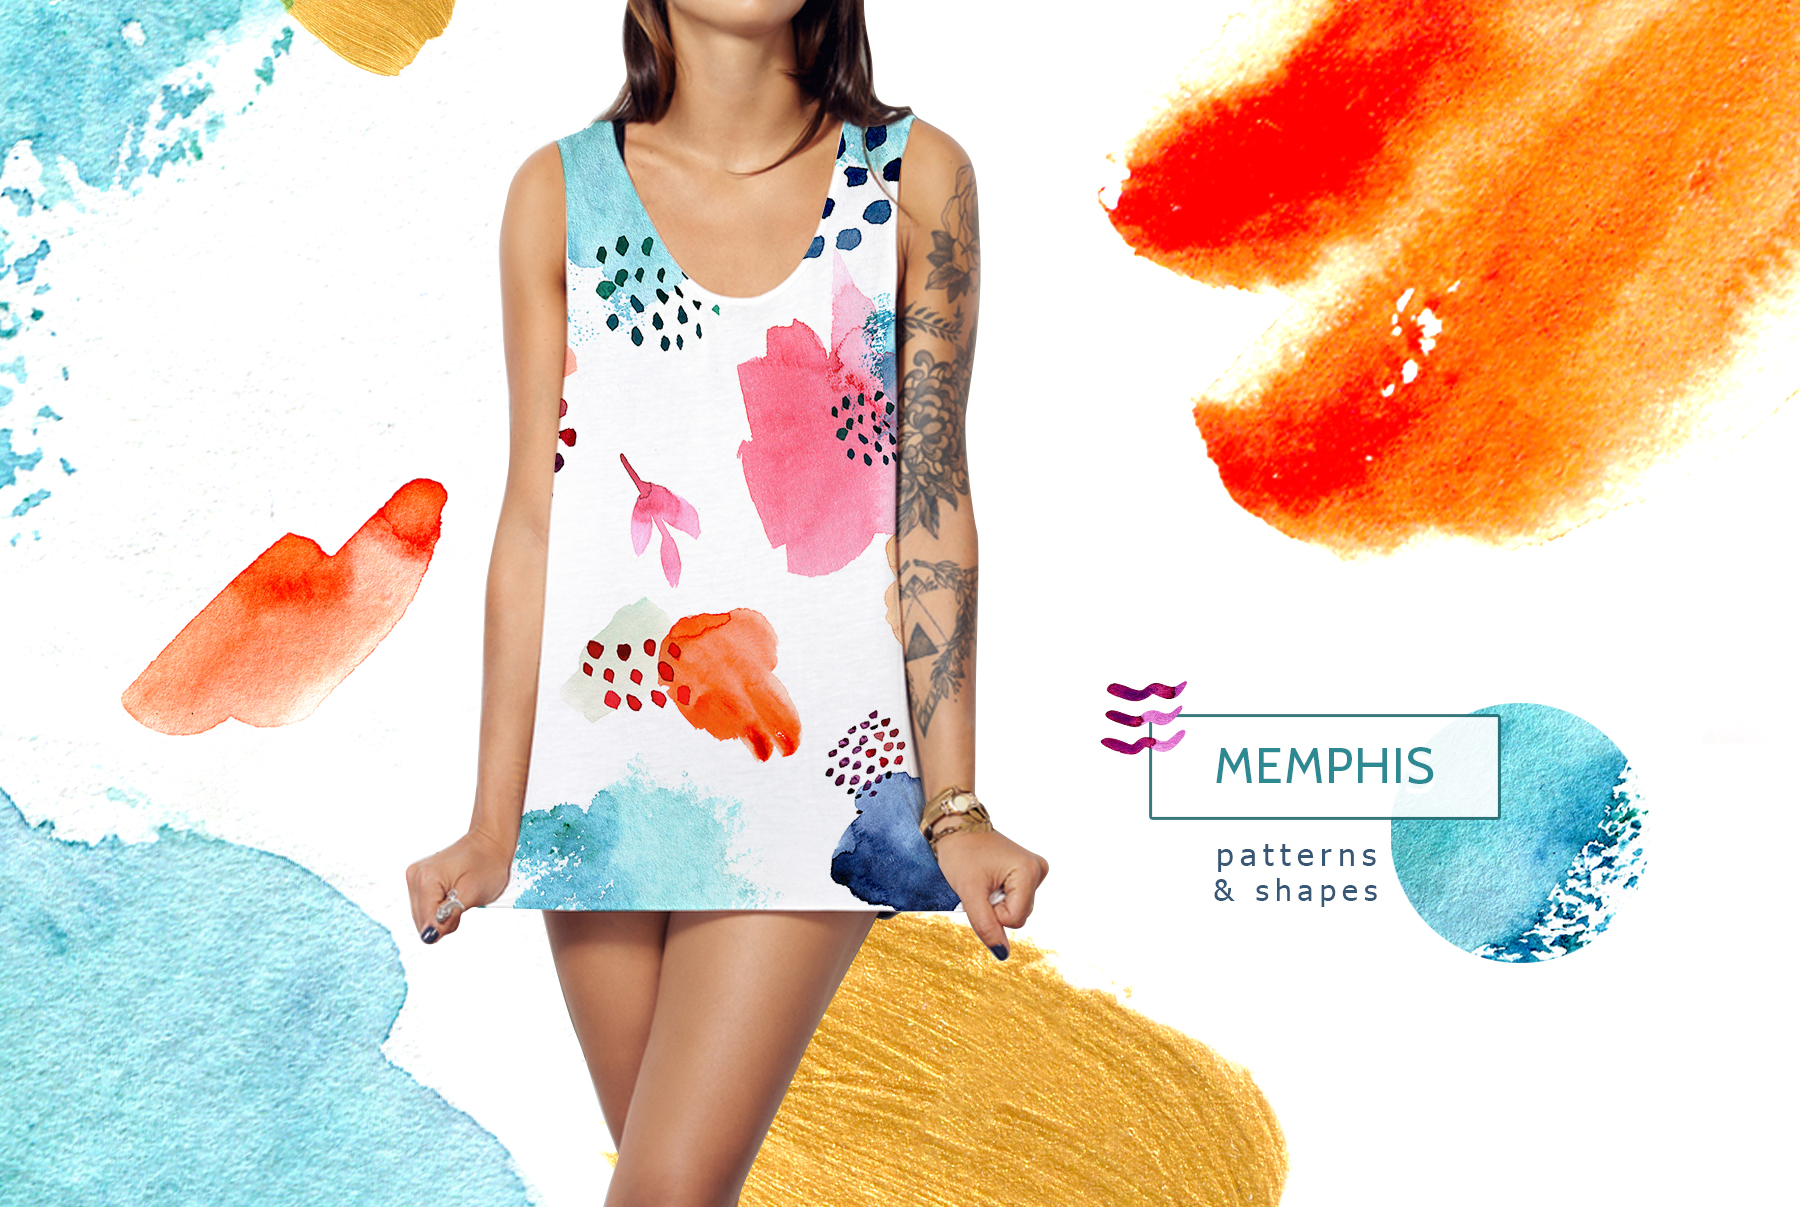 Watercolor memphis patterns & shapes example image 1